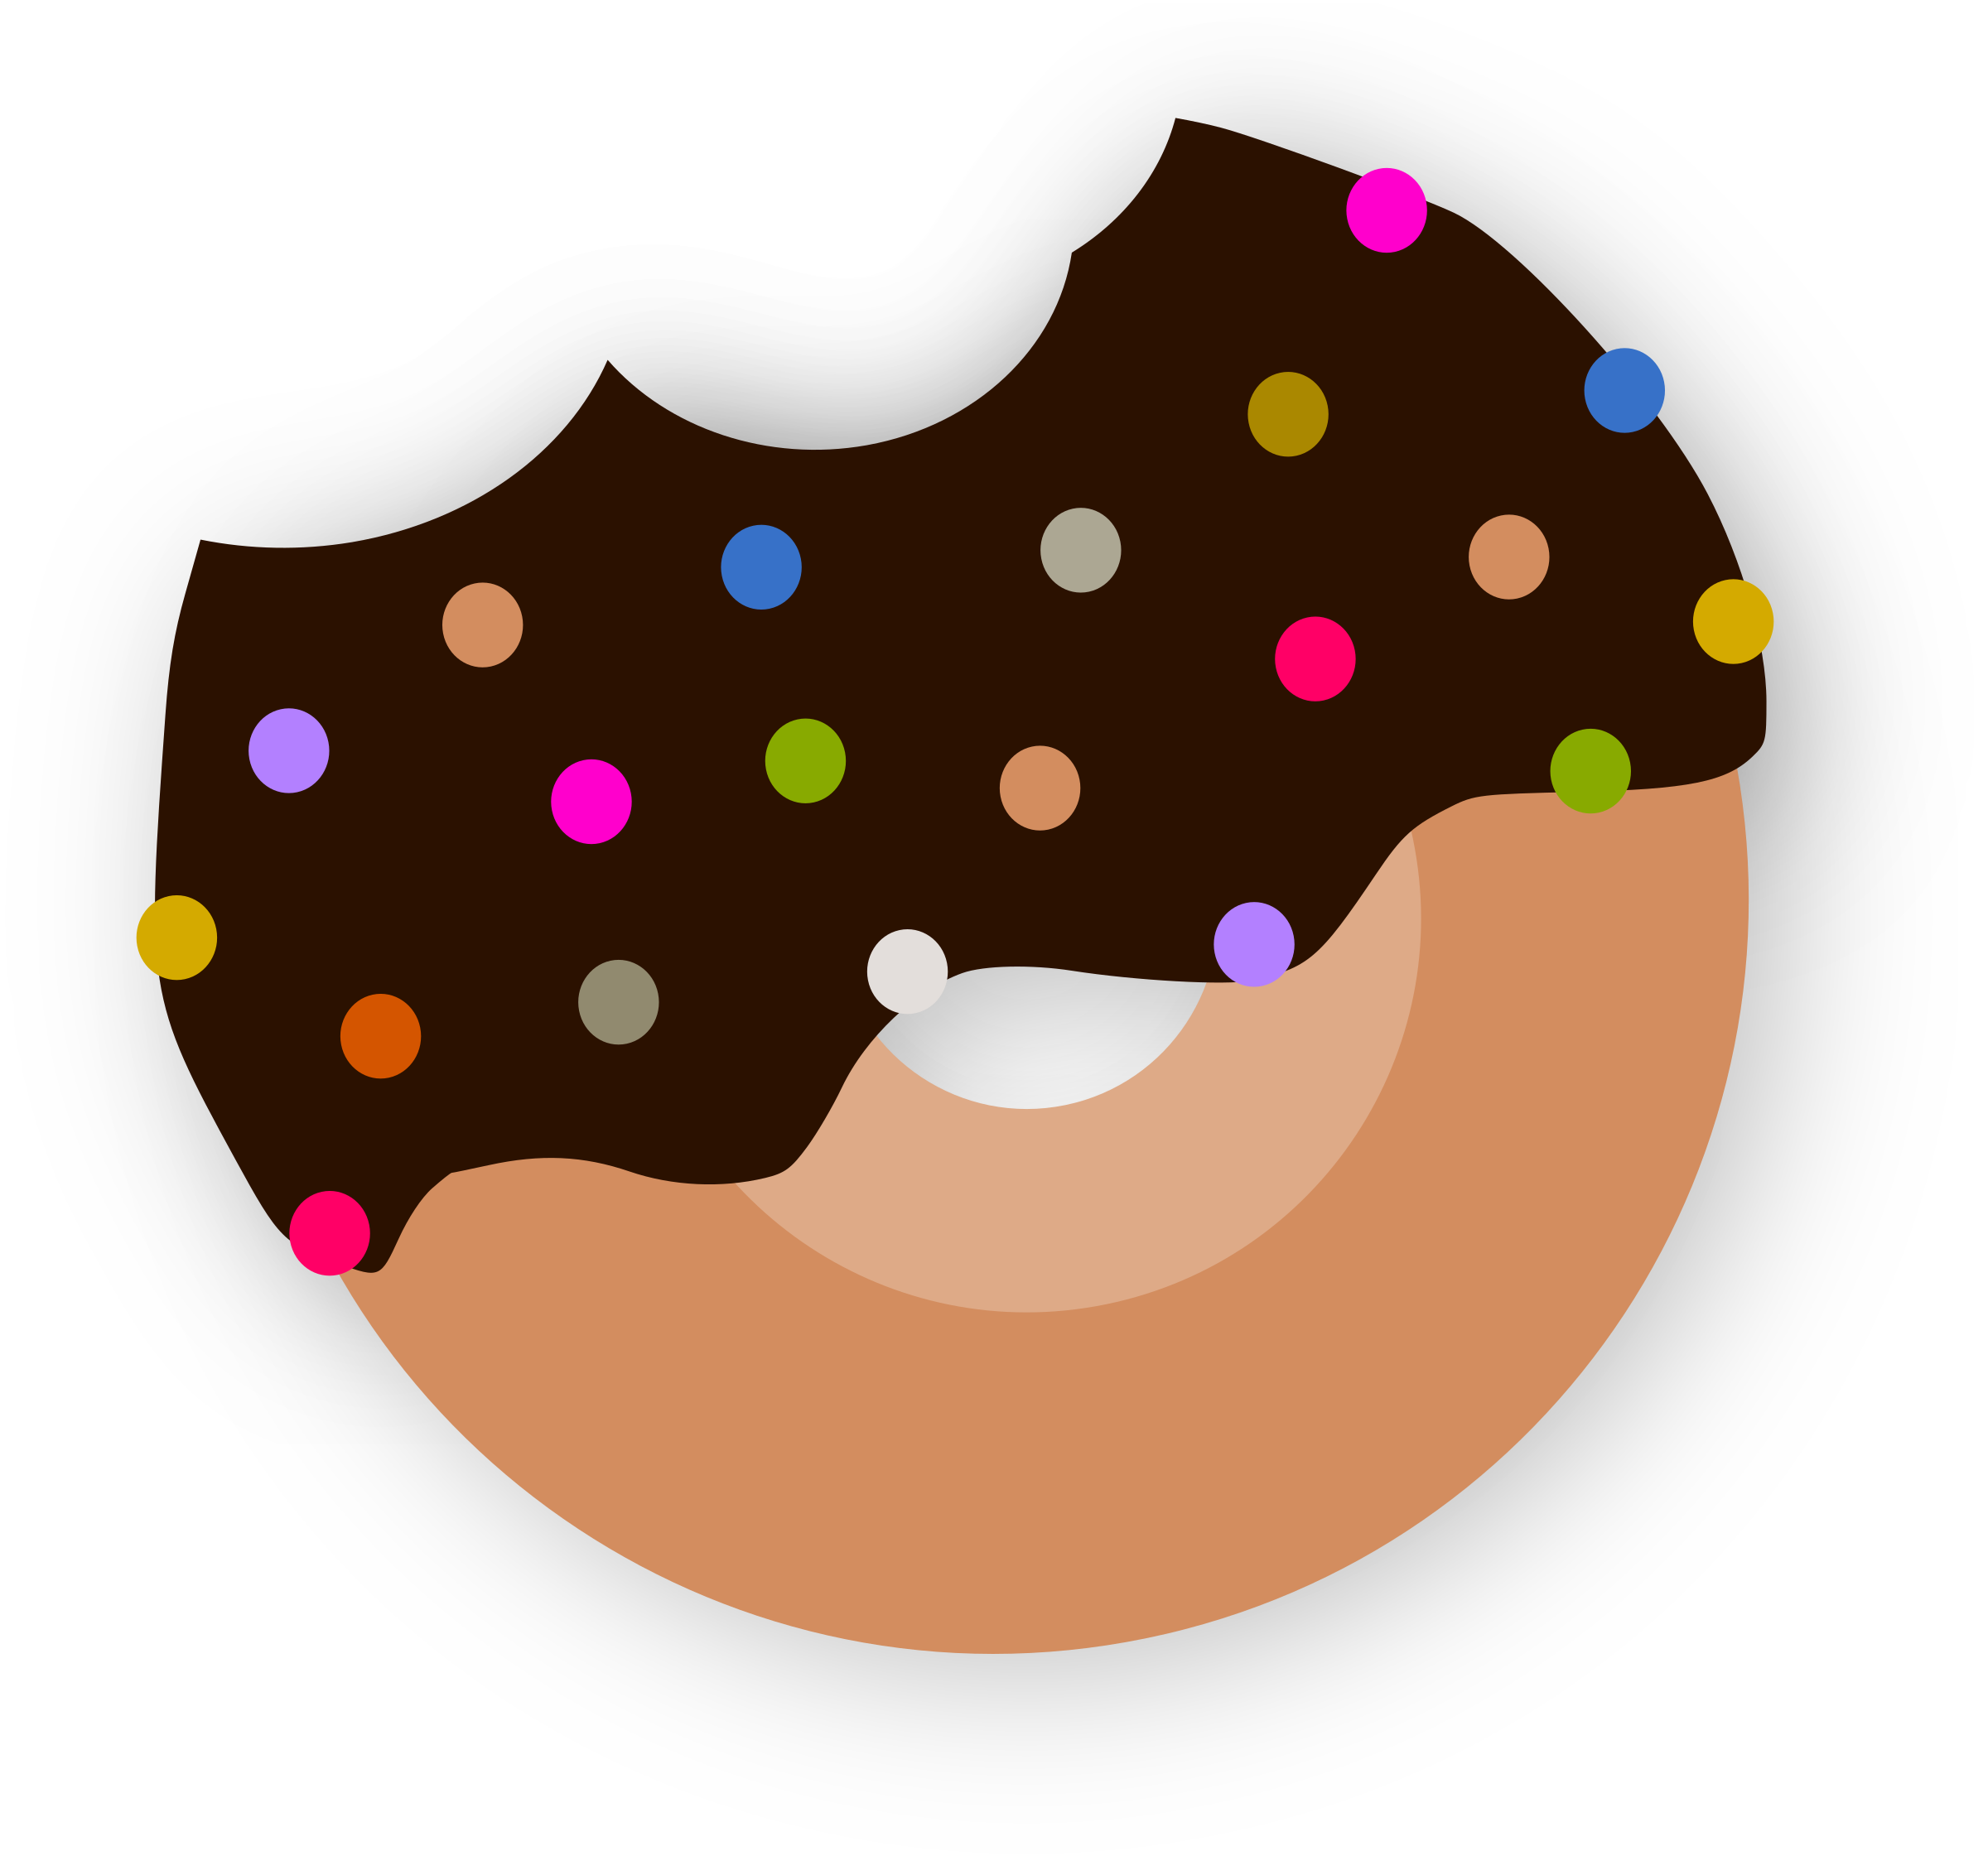 Delicious Donut With Chocolate by hackdorte